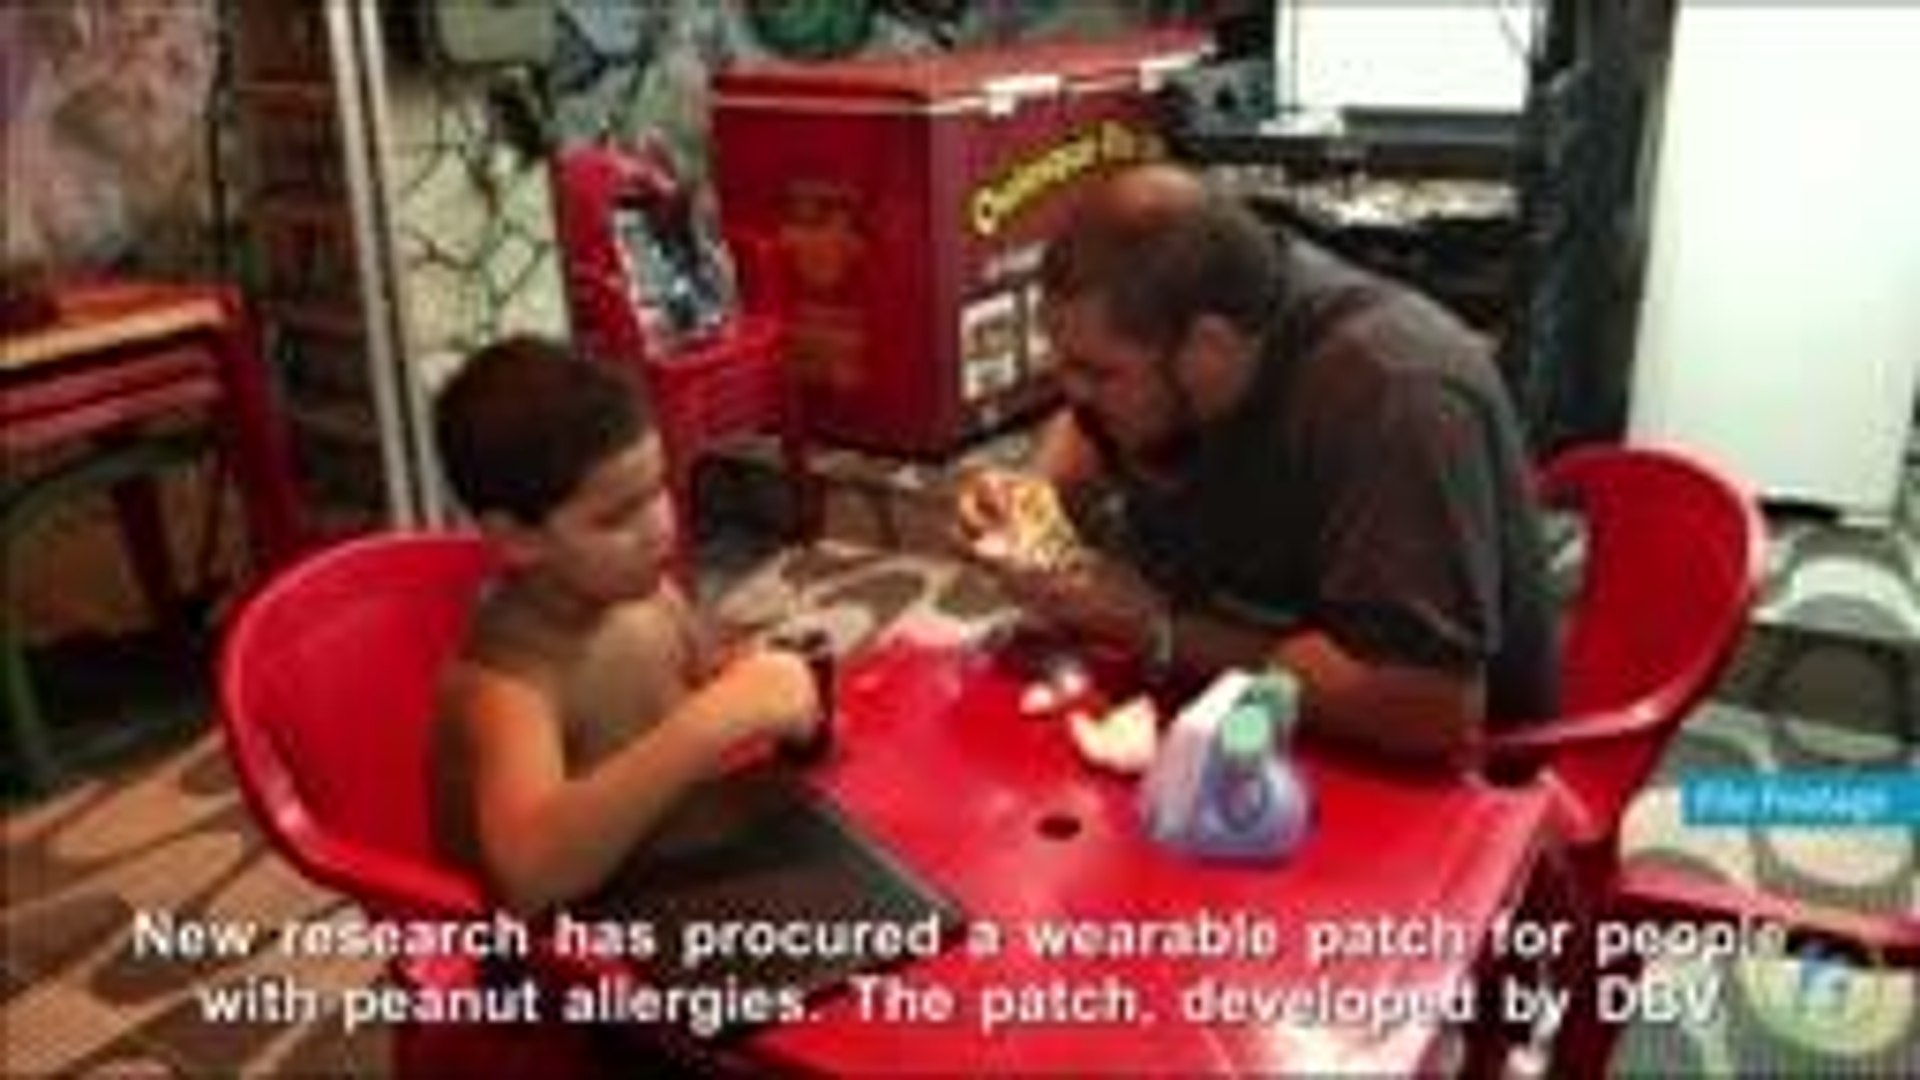 New Treatment For Peanut Allergy